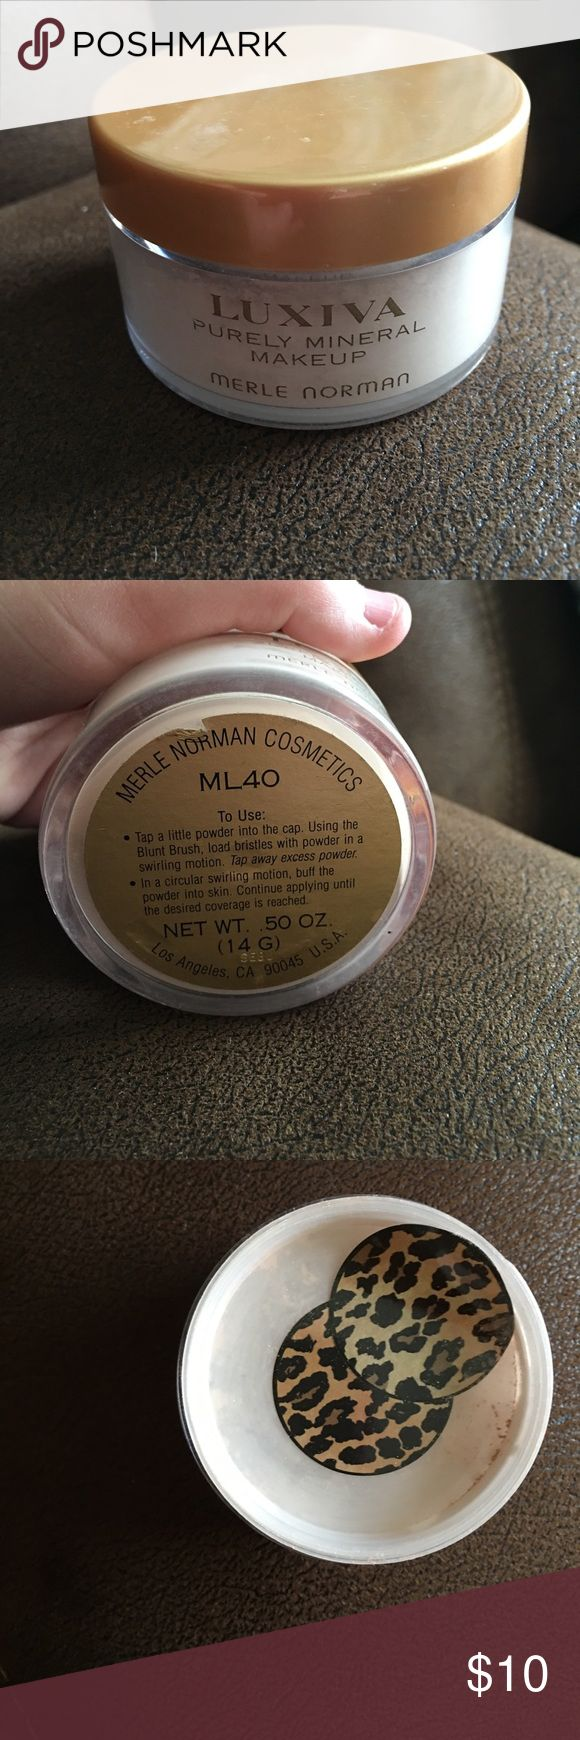 Merle Norman powder Bought a few years ago and my skin was to sensitive to use it. It's only been used twice and over half full. Shade ML 40 which is a medium light. I put stickers over the holes so all the powder doesn't come out. Merle Norman Makeup Face Powder